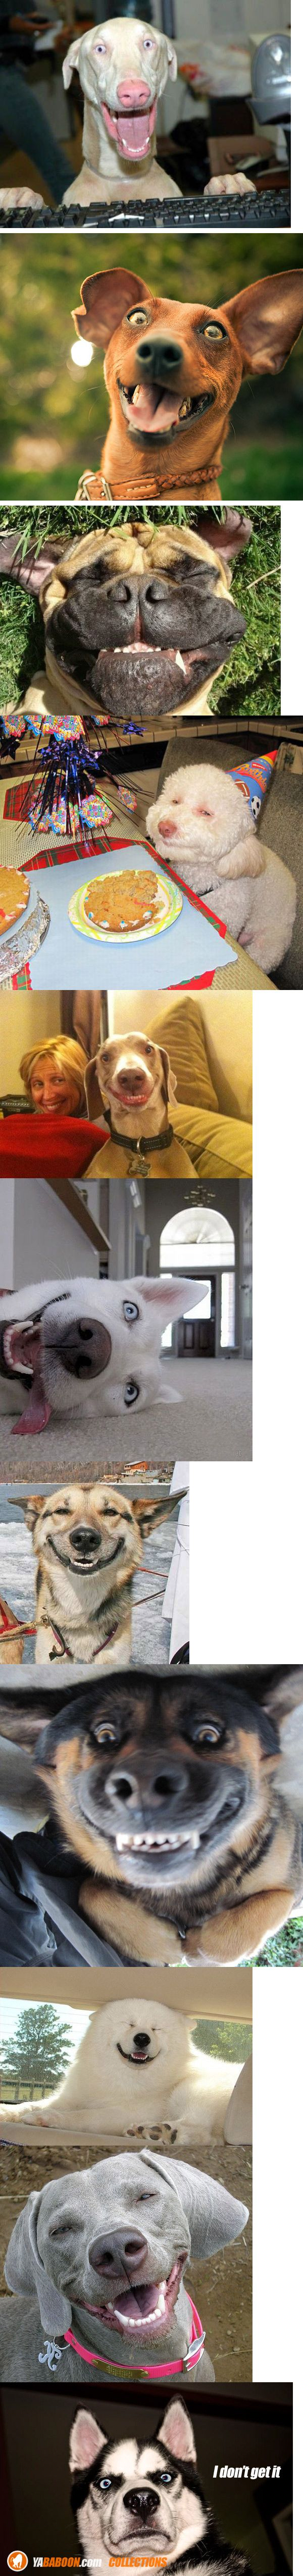 That Was a Funny Joke !! - Haa Haa: Smiling Dogs, Giggle, Happy Dogs, So Funny, Smiley Dog, Animal